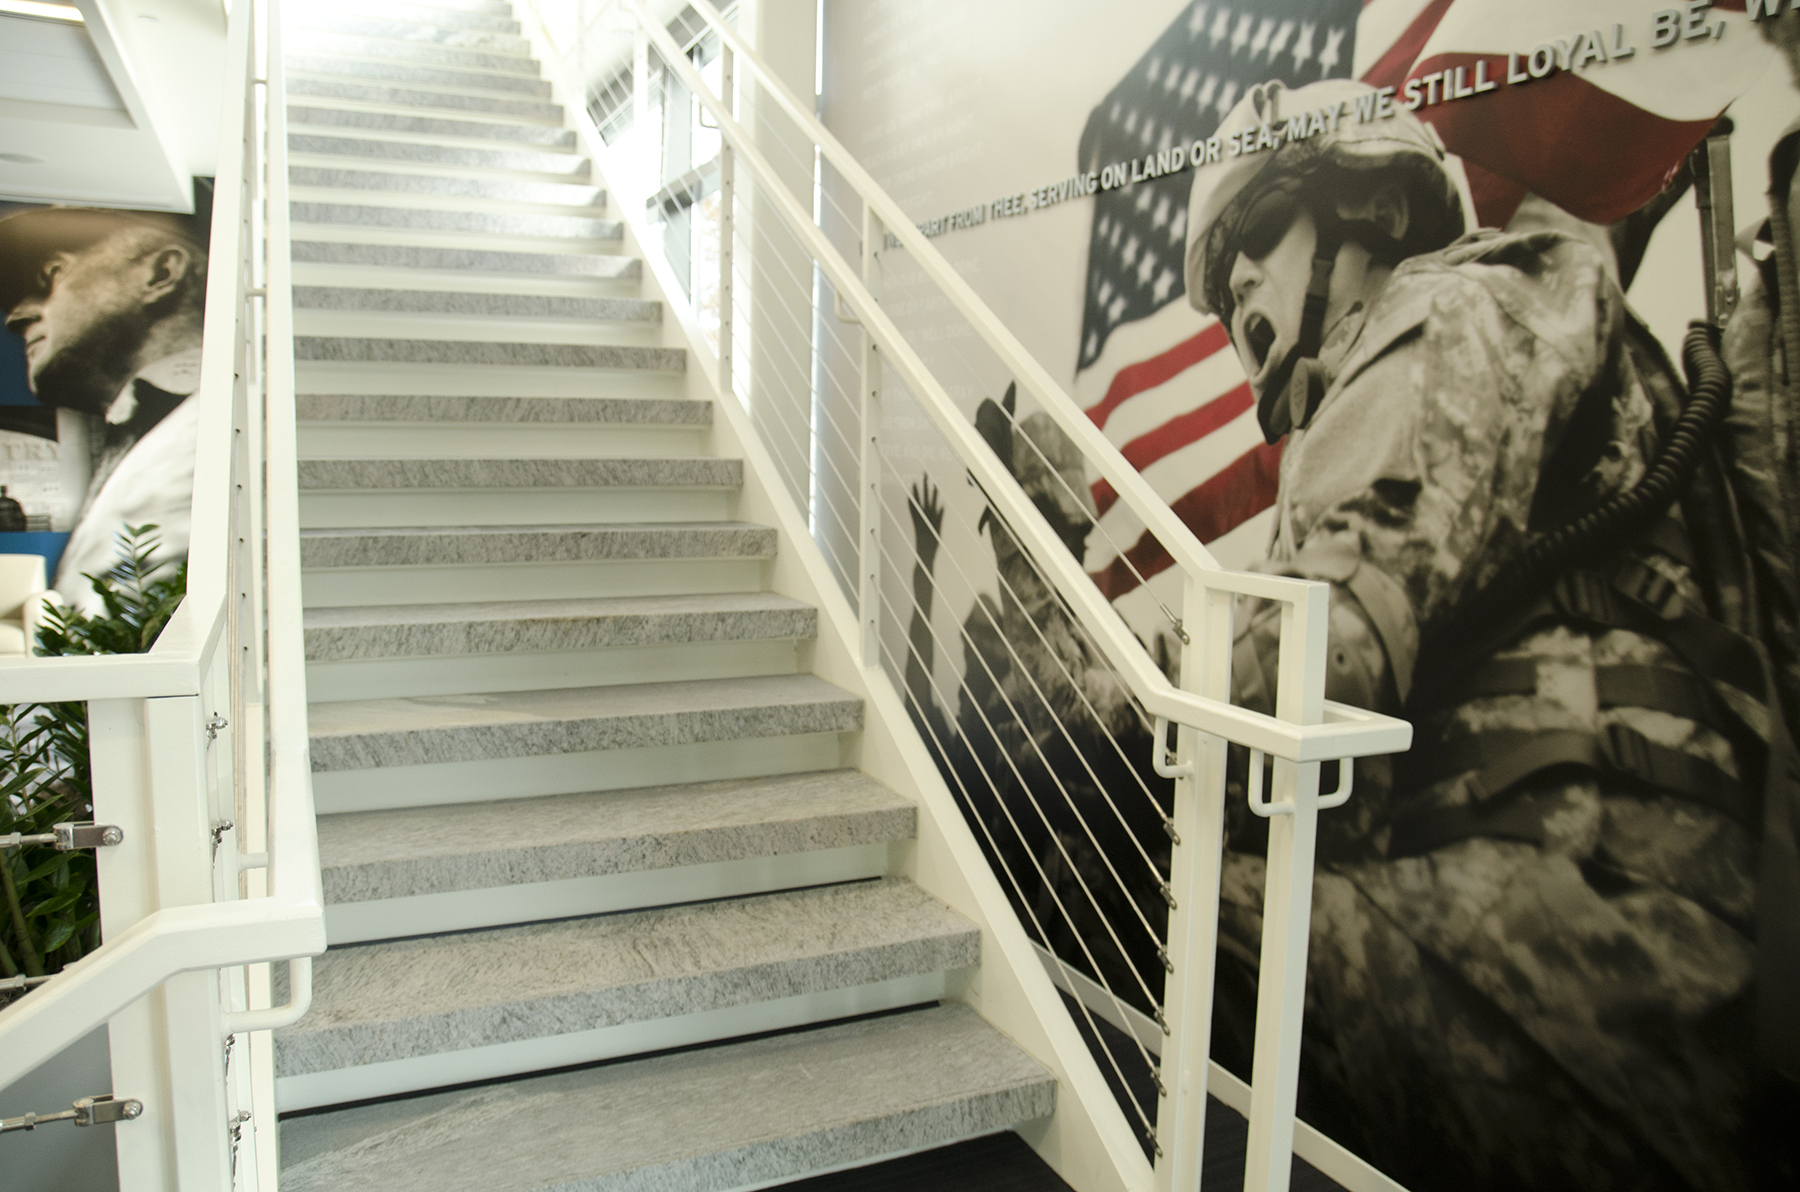 stone stairs with solider art in background